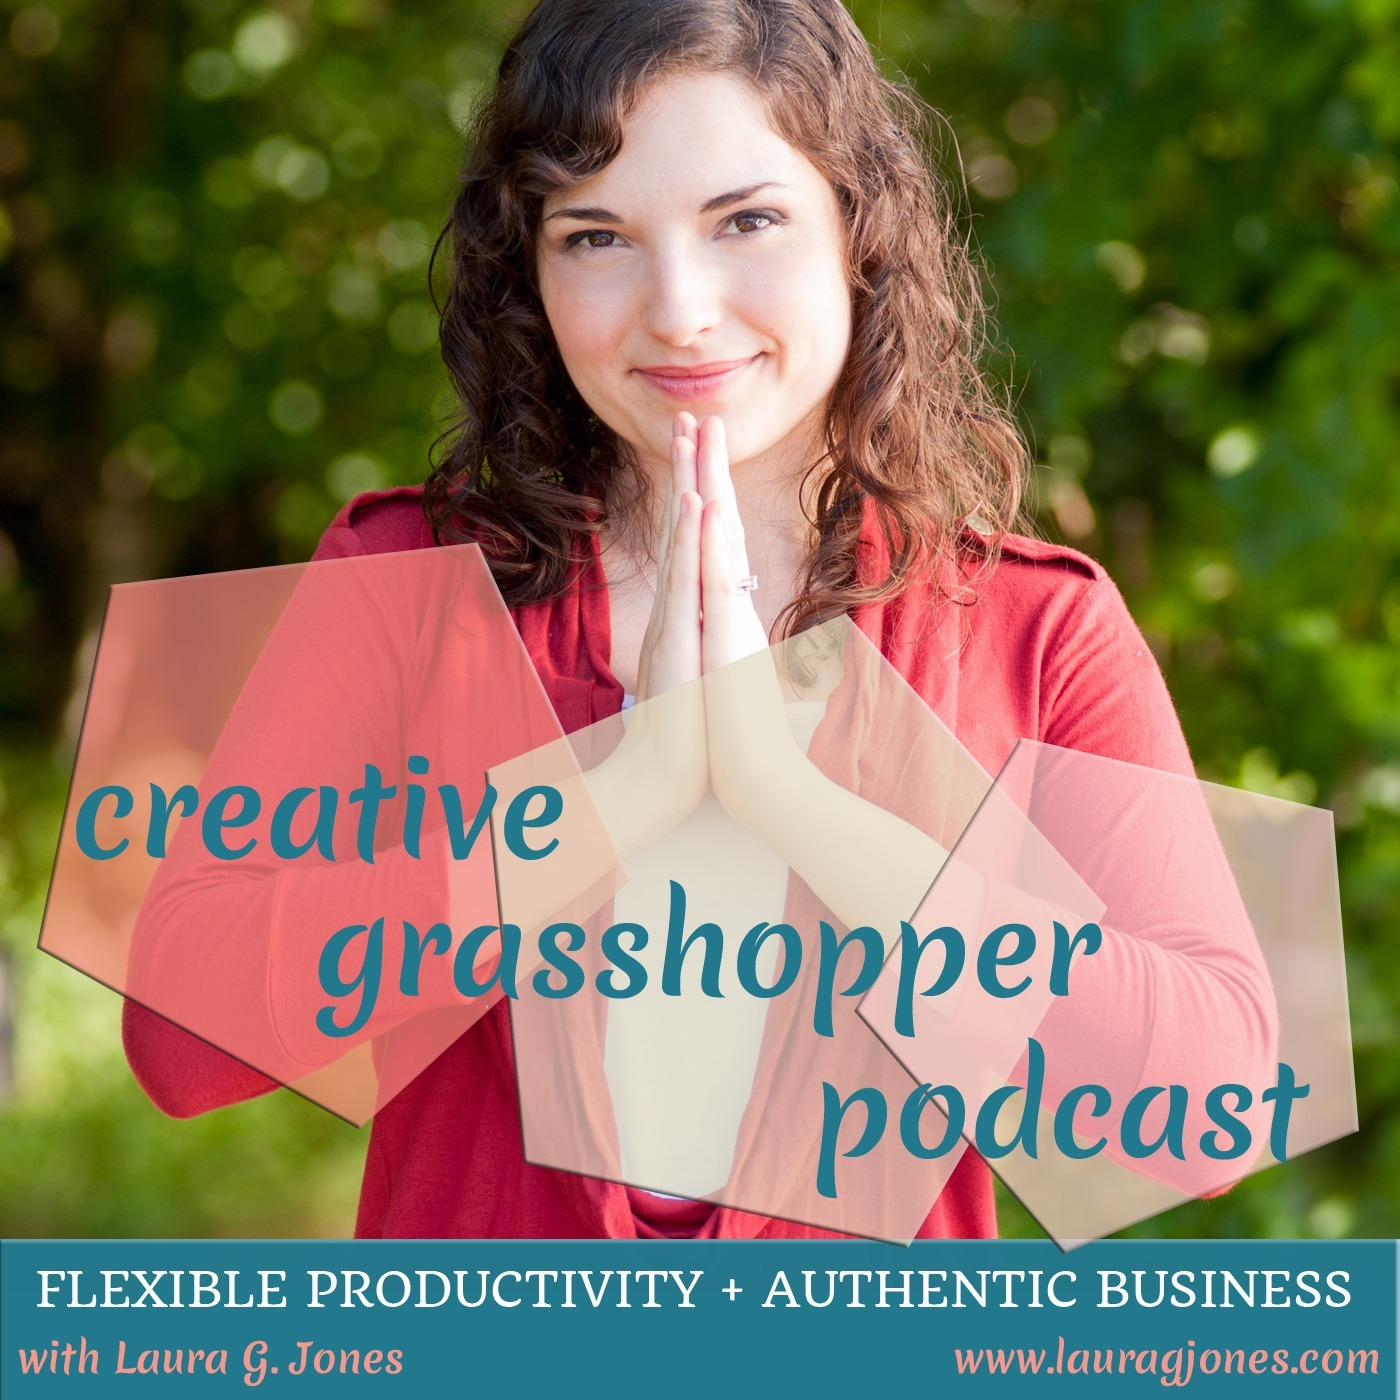 Creative Grasshopper Podcast